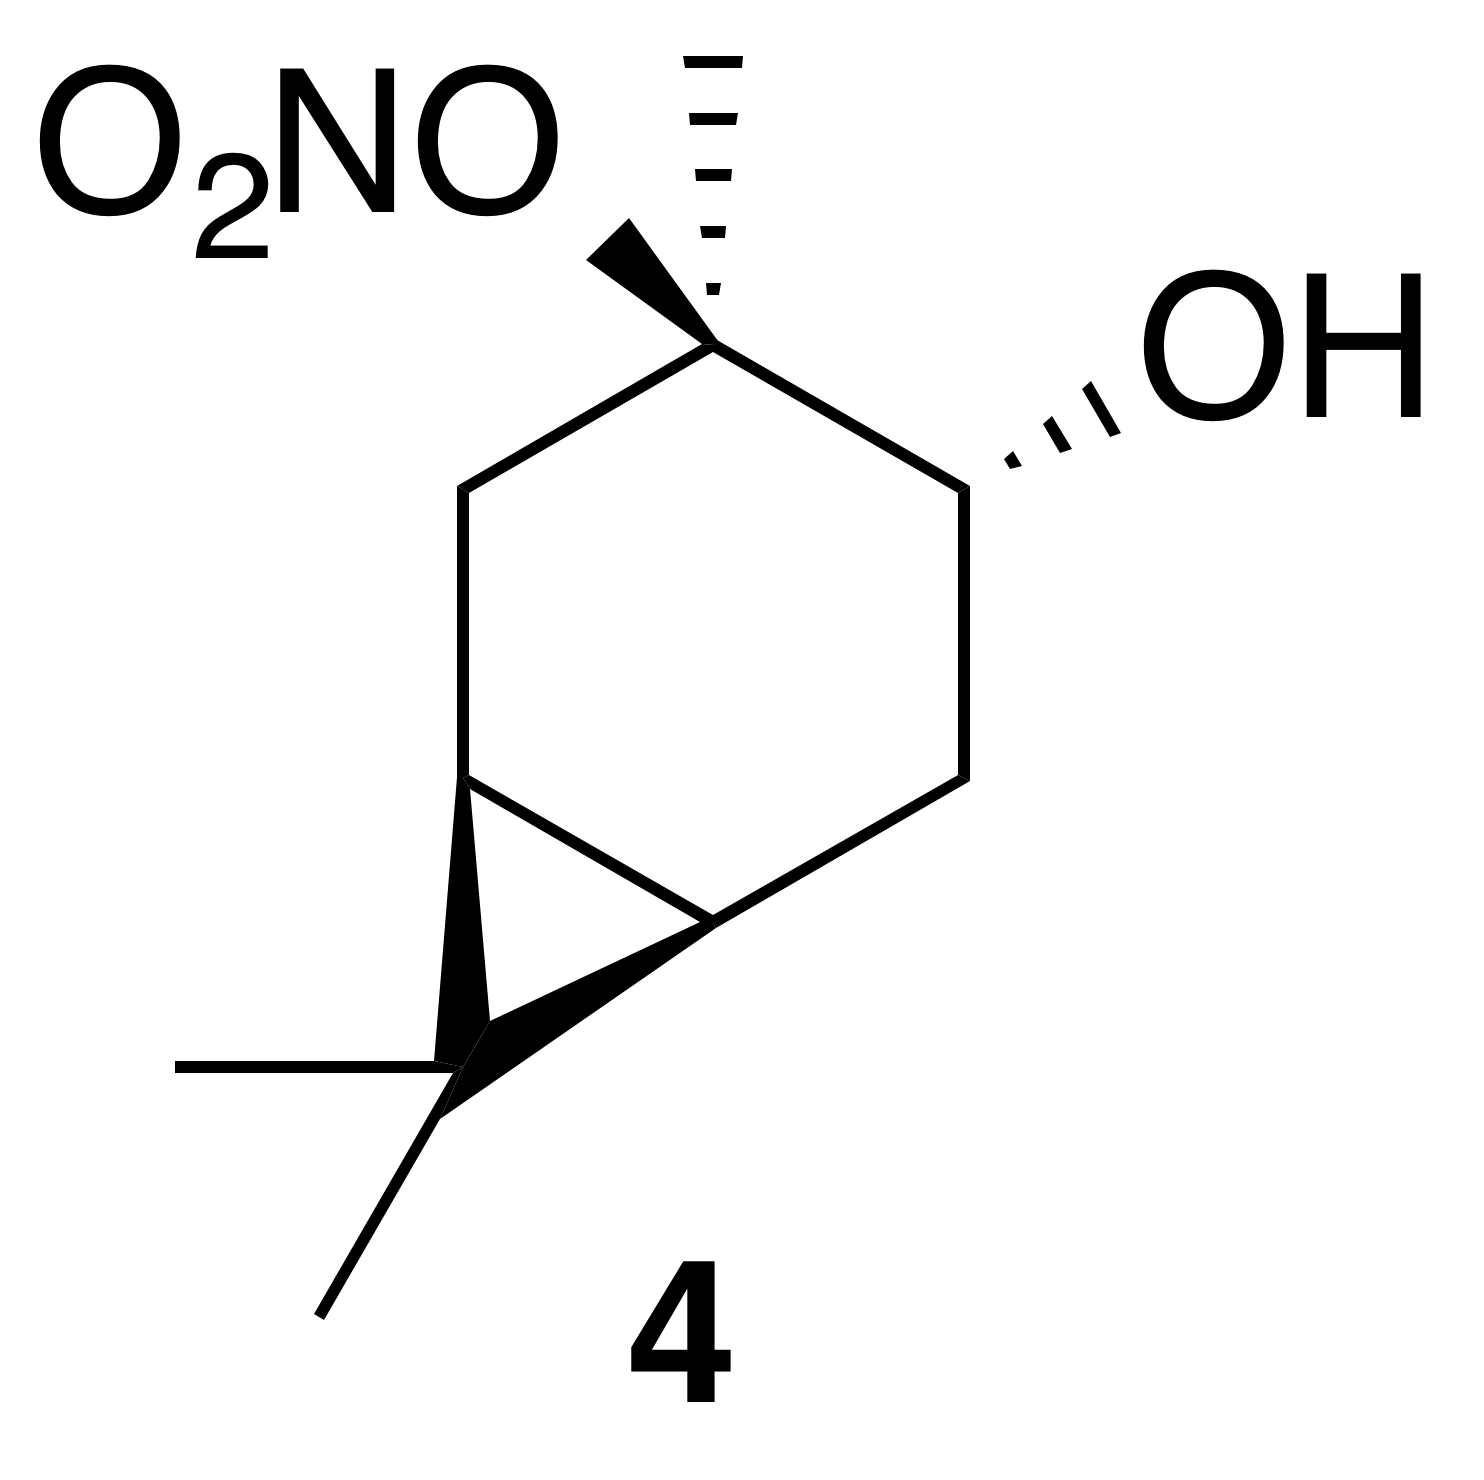 https://www.atmos-chem-phys.net/20/4241/2020/acp-20-4241-2020-g08